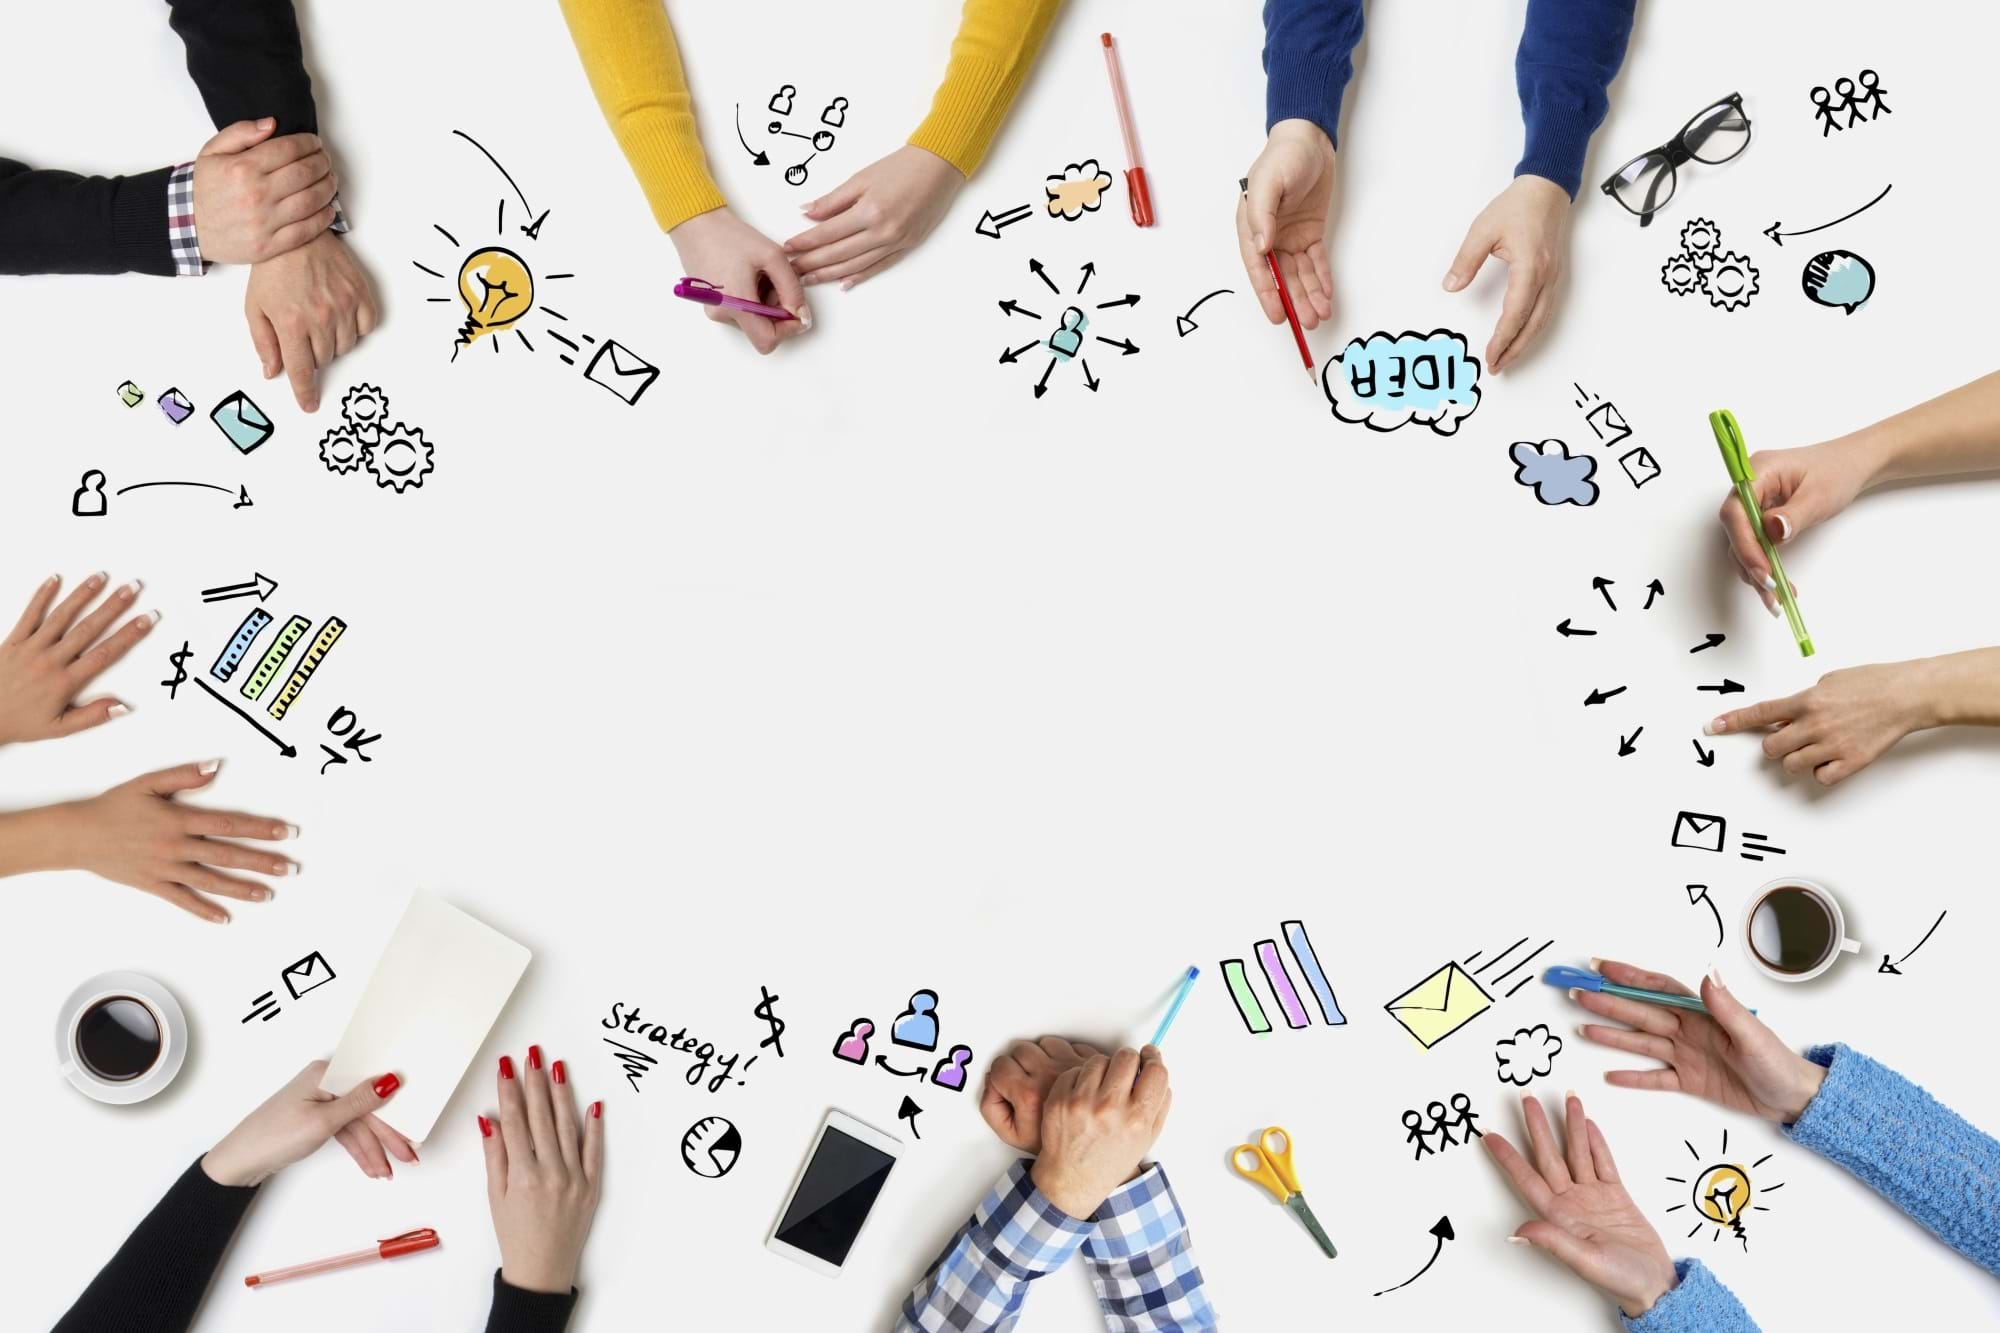 The Entrepreneurial Method: students validate theory with practice in class